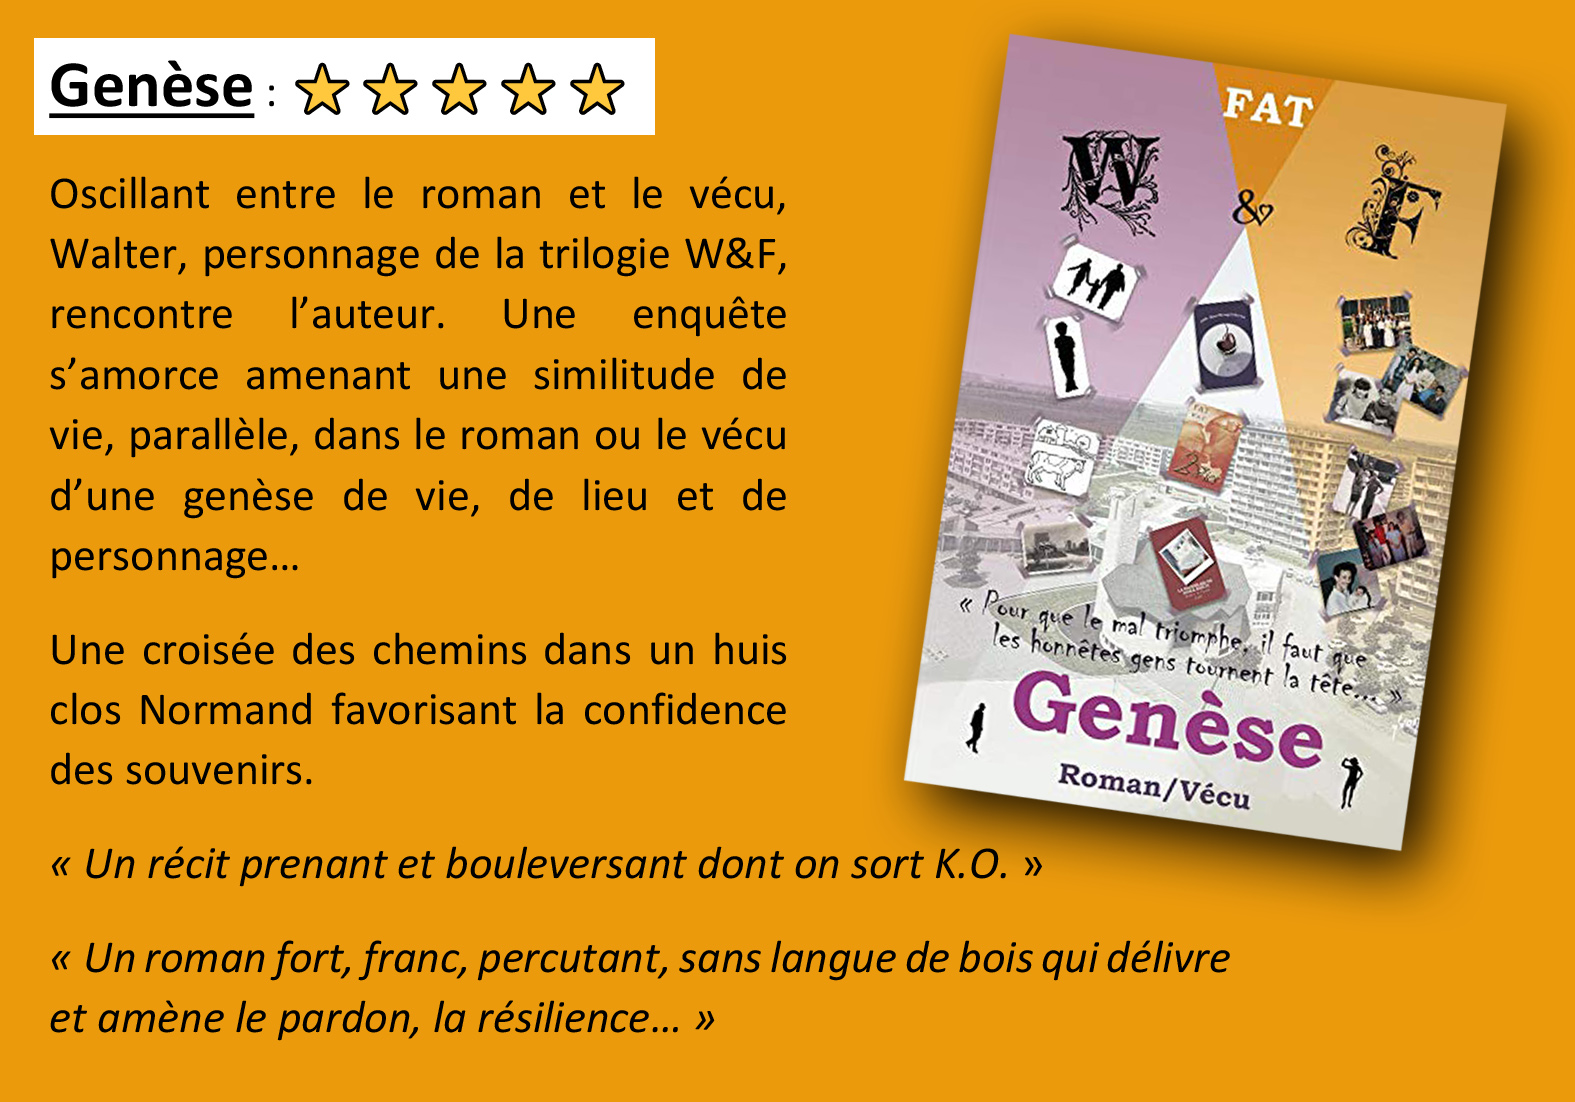 Fat site de rencontres